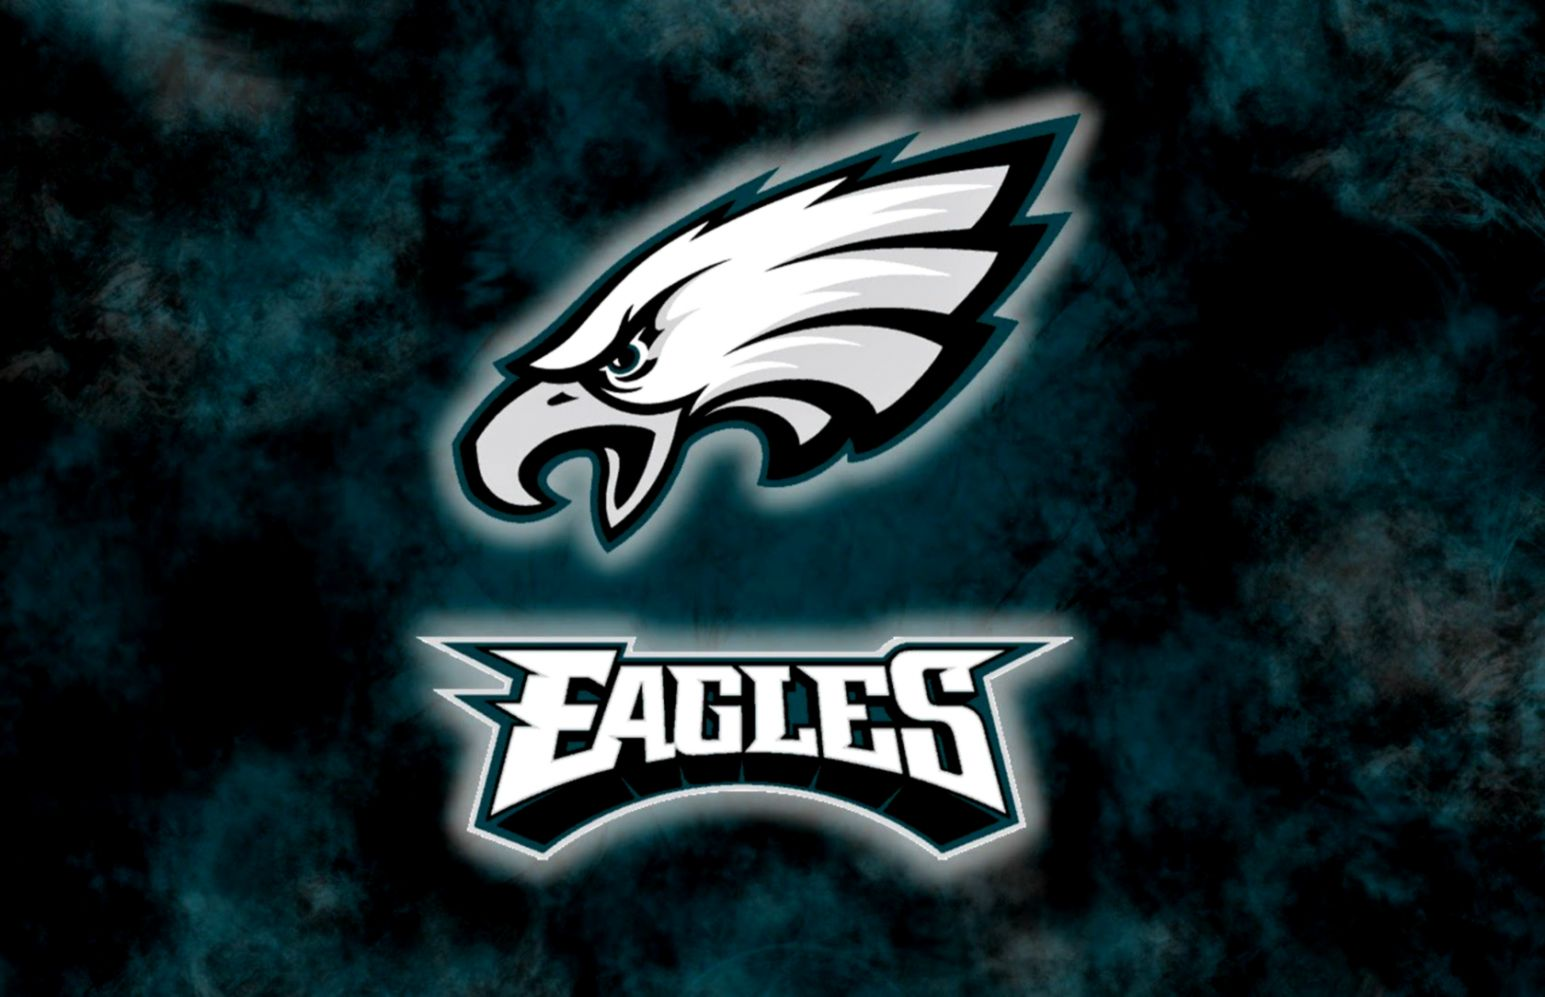 NFL Philadelphia Eagles wallpaper 2018 in Football